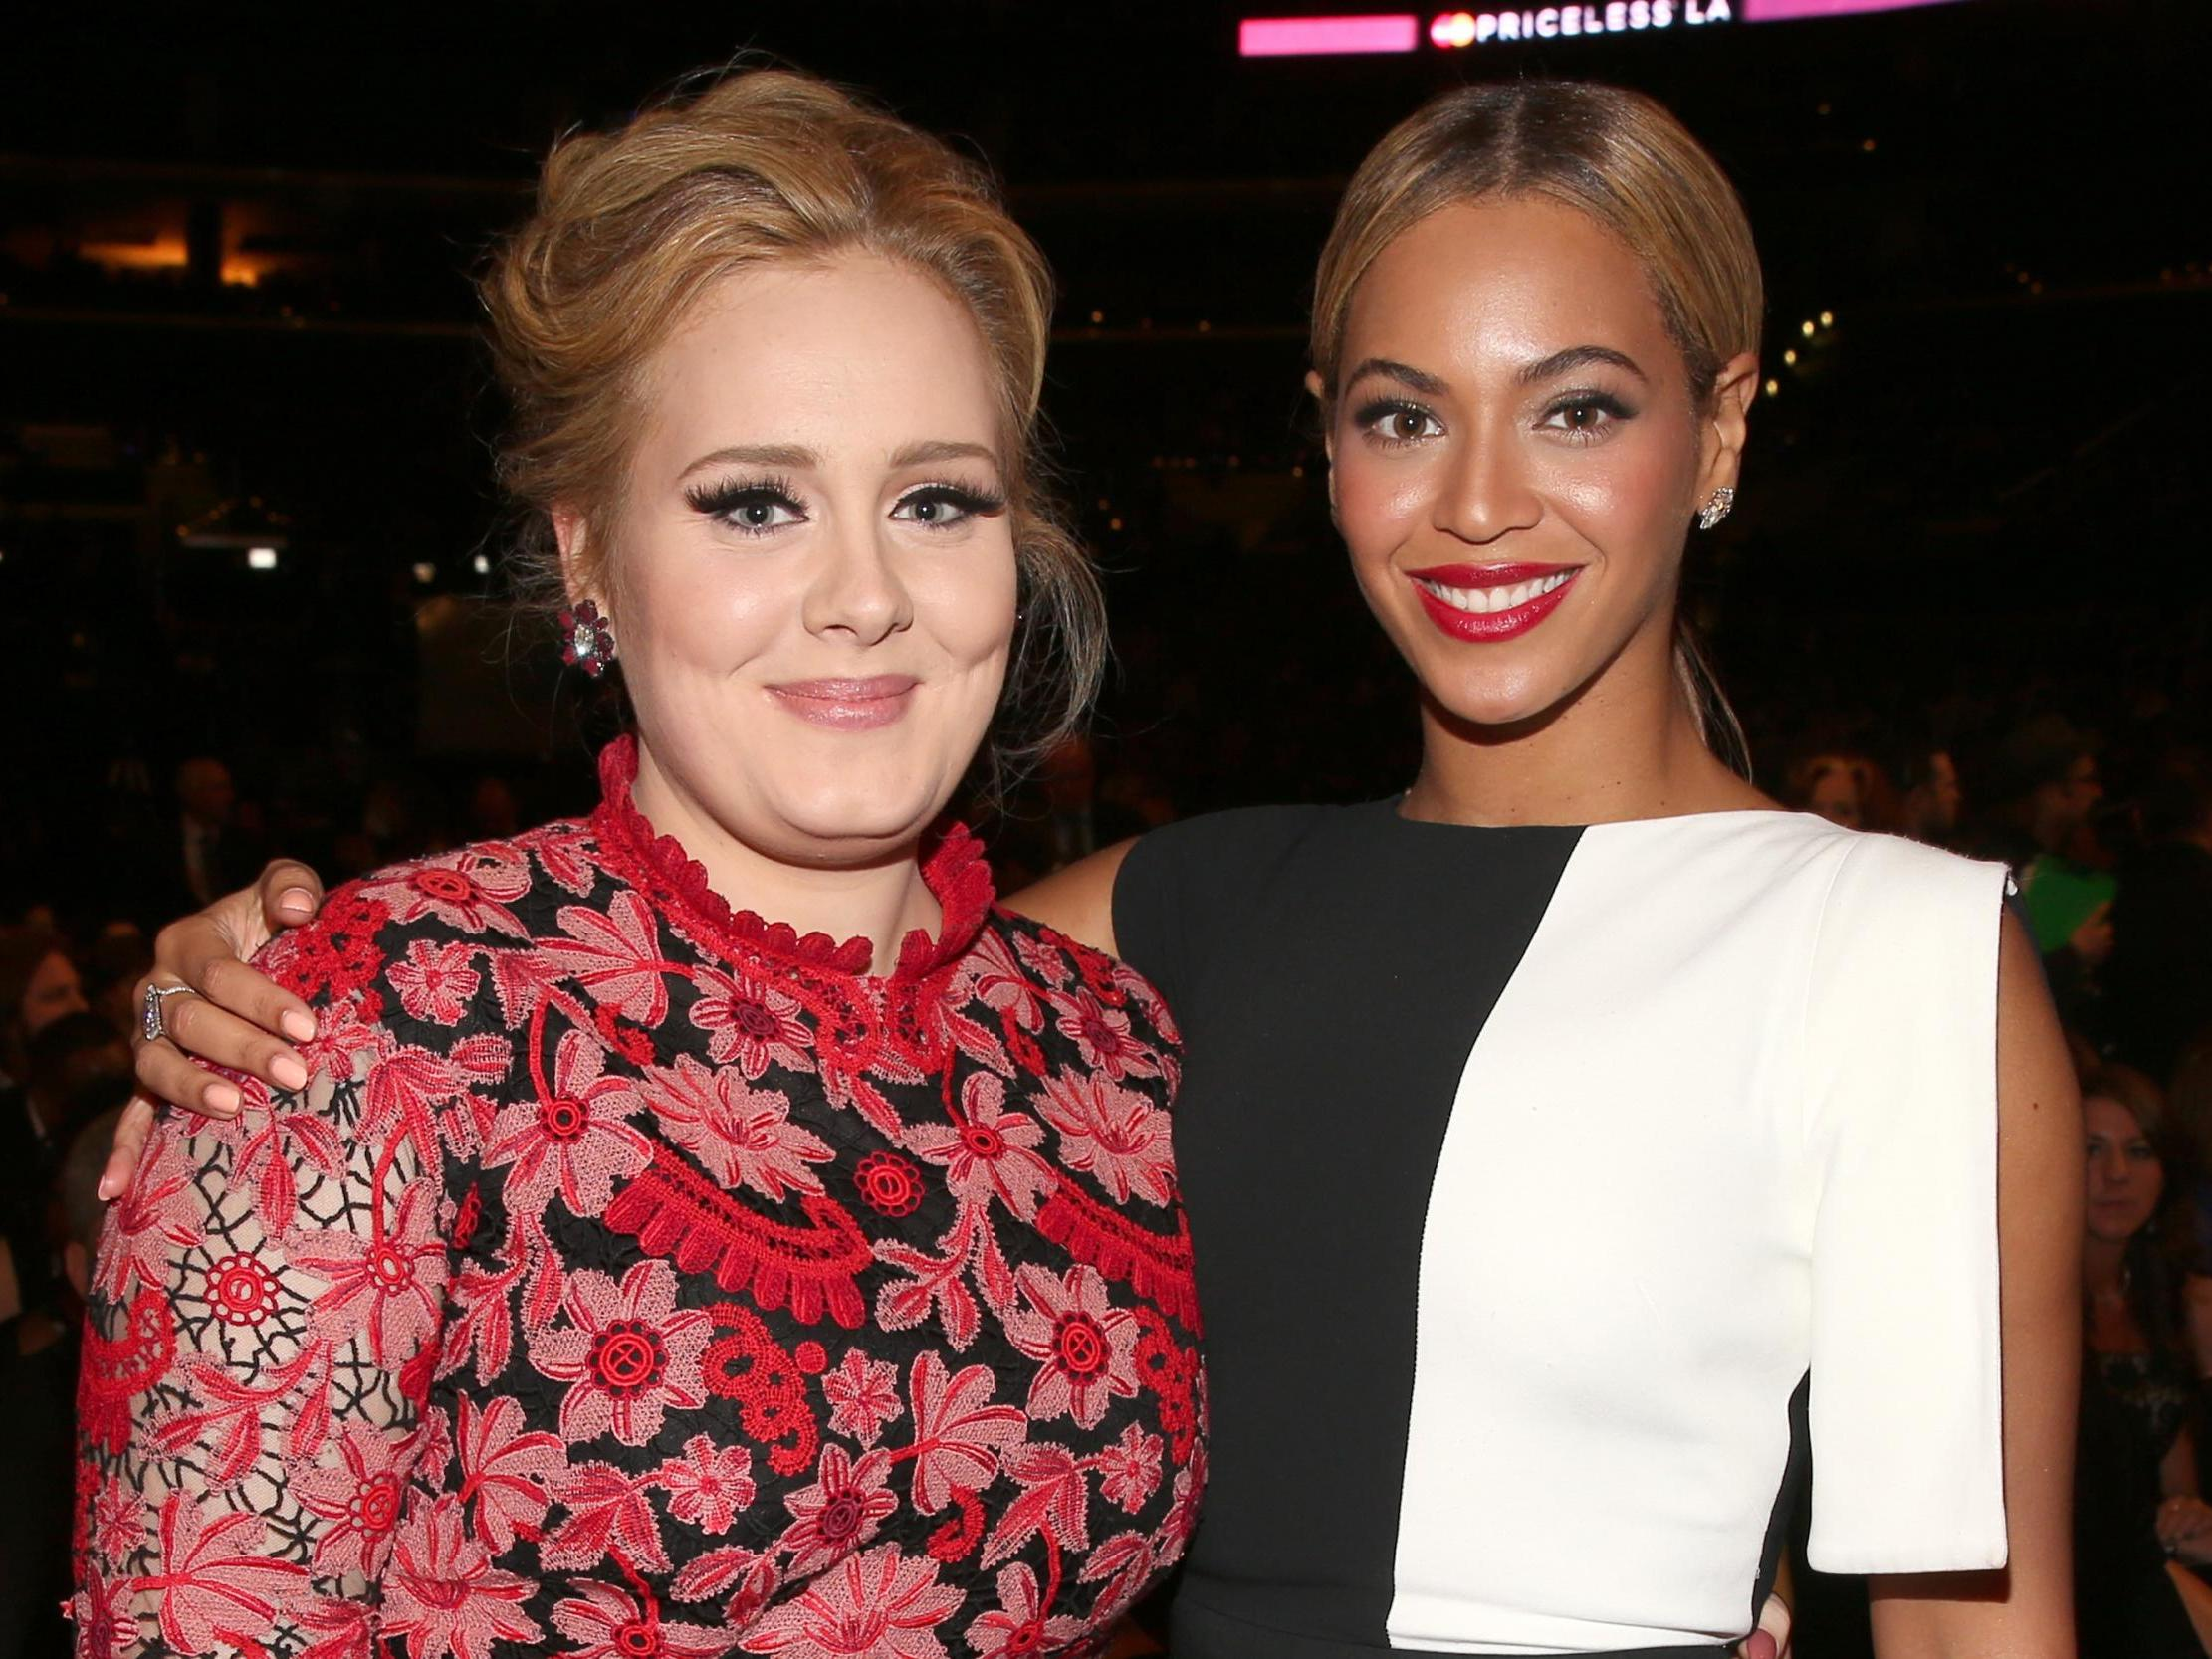 Adele, Beyoncé and Coldplay's Chris Martin join forces for star-studded collaboration